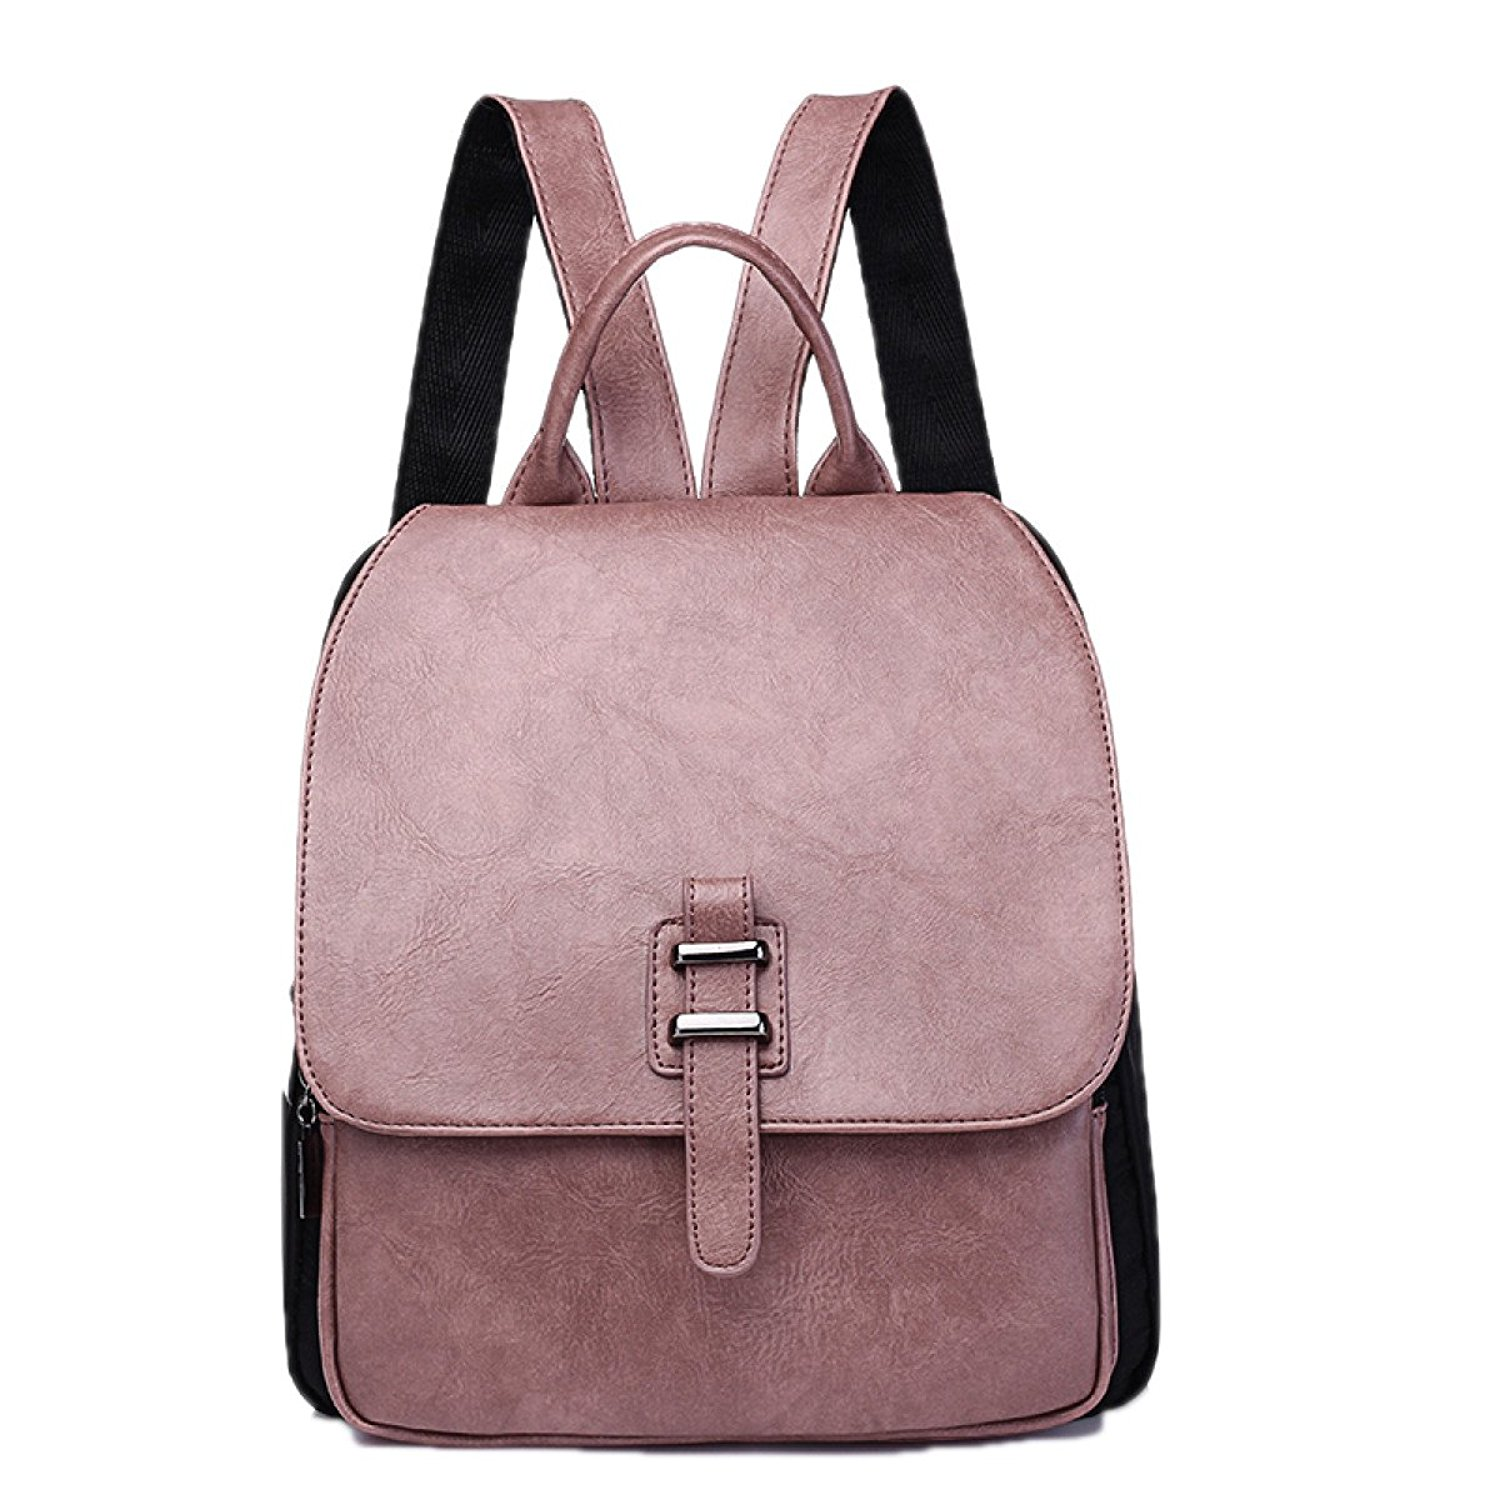 Get Quotations New Female Casual High School Students College Campus Simple Stylish Travel Bags Shoulder Bag